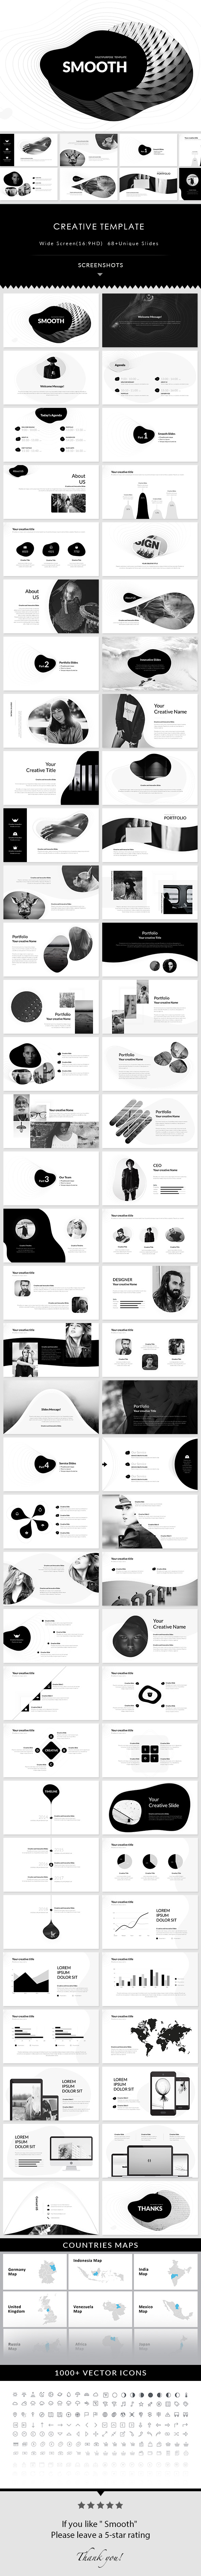 Smooth - Keynote Presentation Template - Creative Keynote Templates